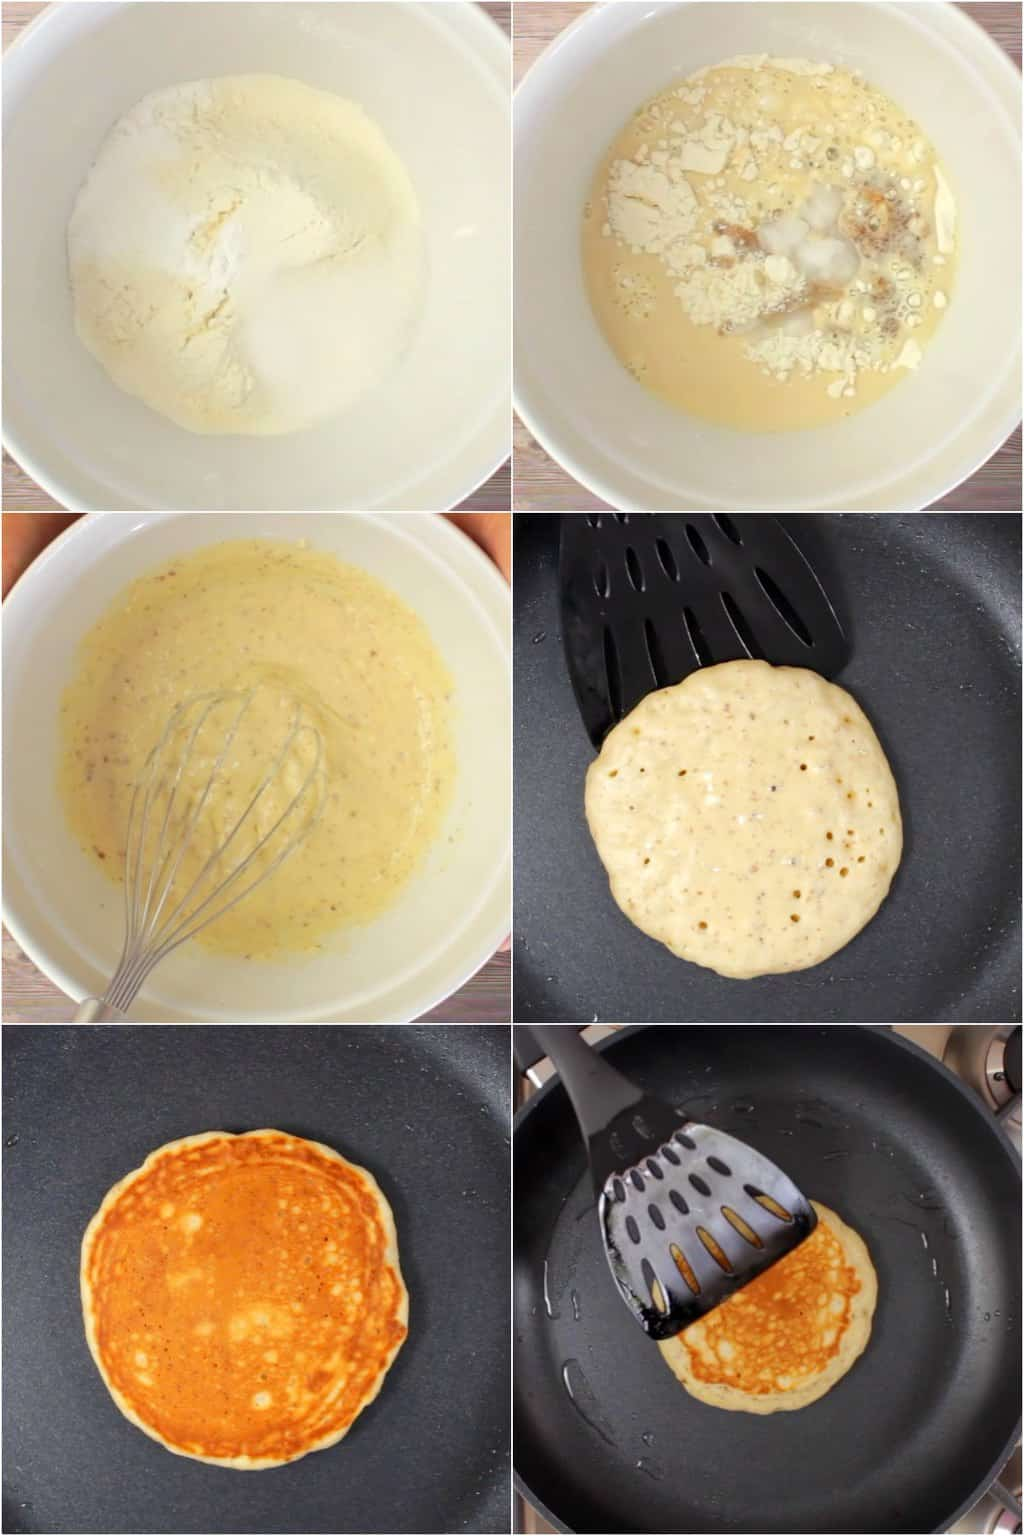 Step by step process photo collage of making vegan pancakes.